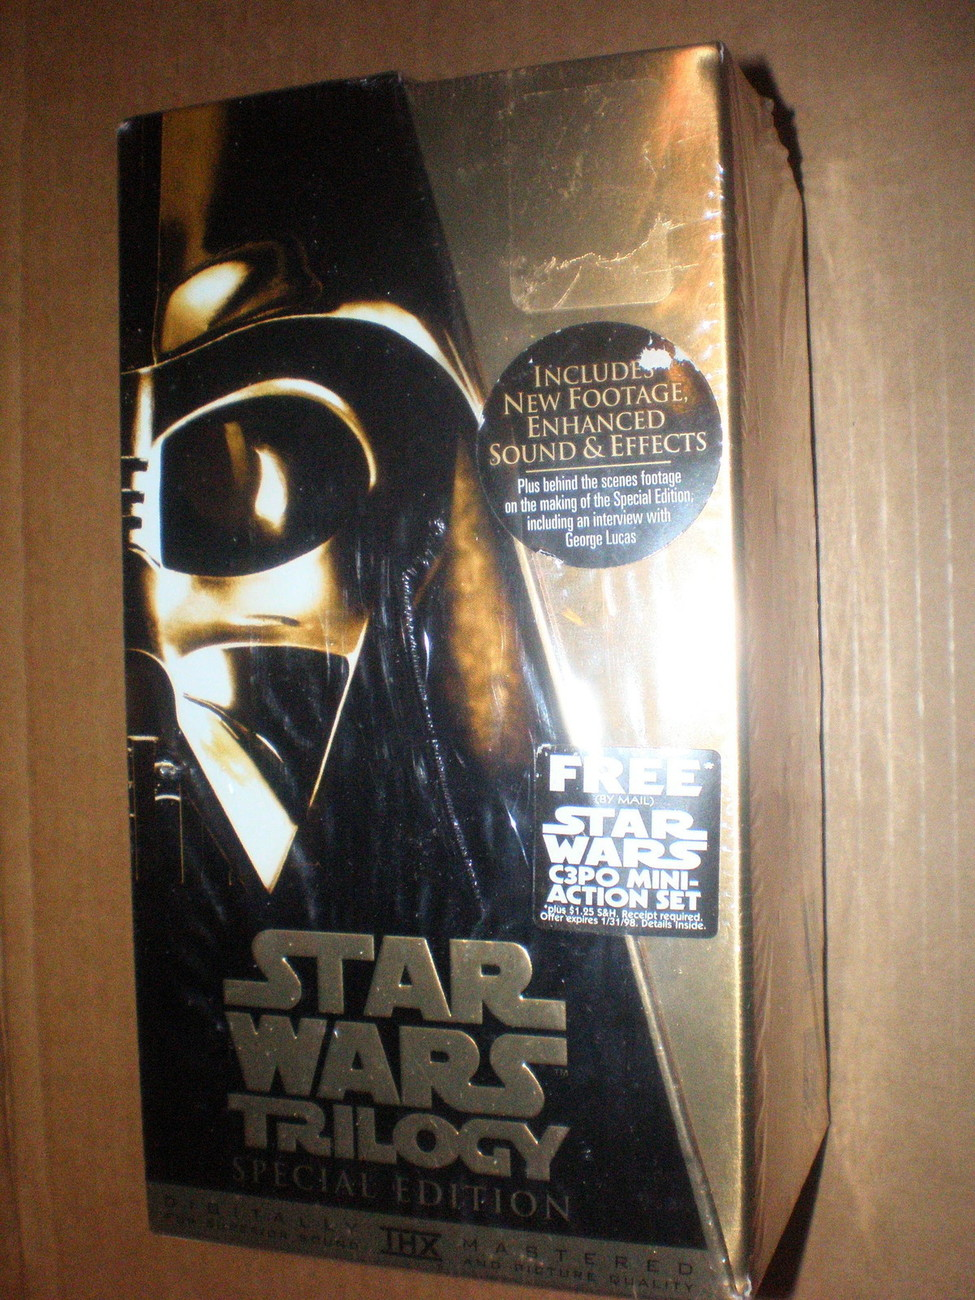 Star Wars Trilogy Special Edition VHS-Brand New, Factory Sealed